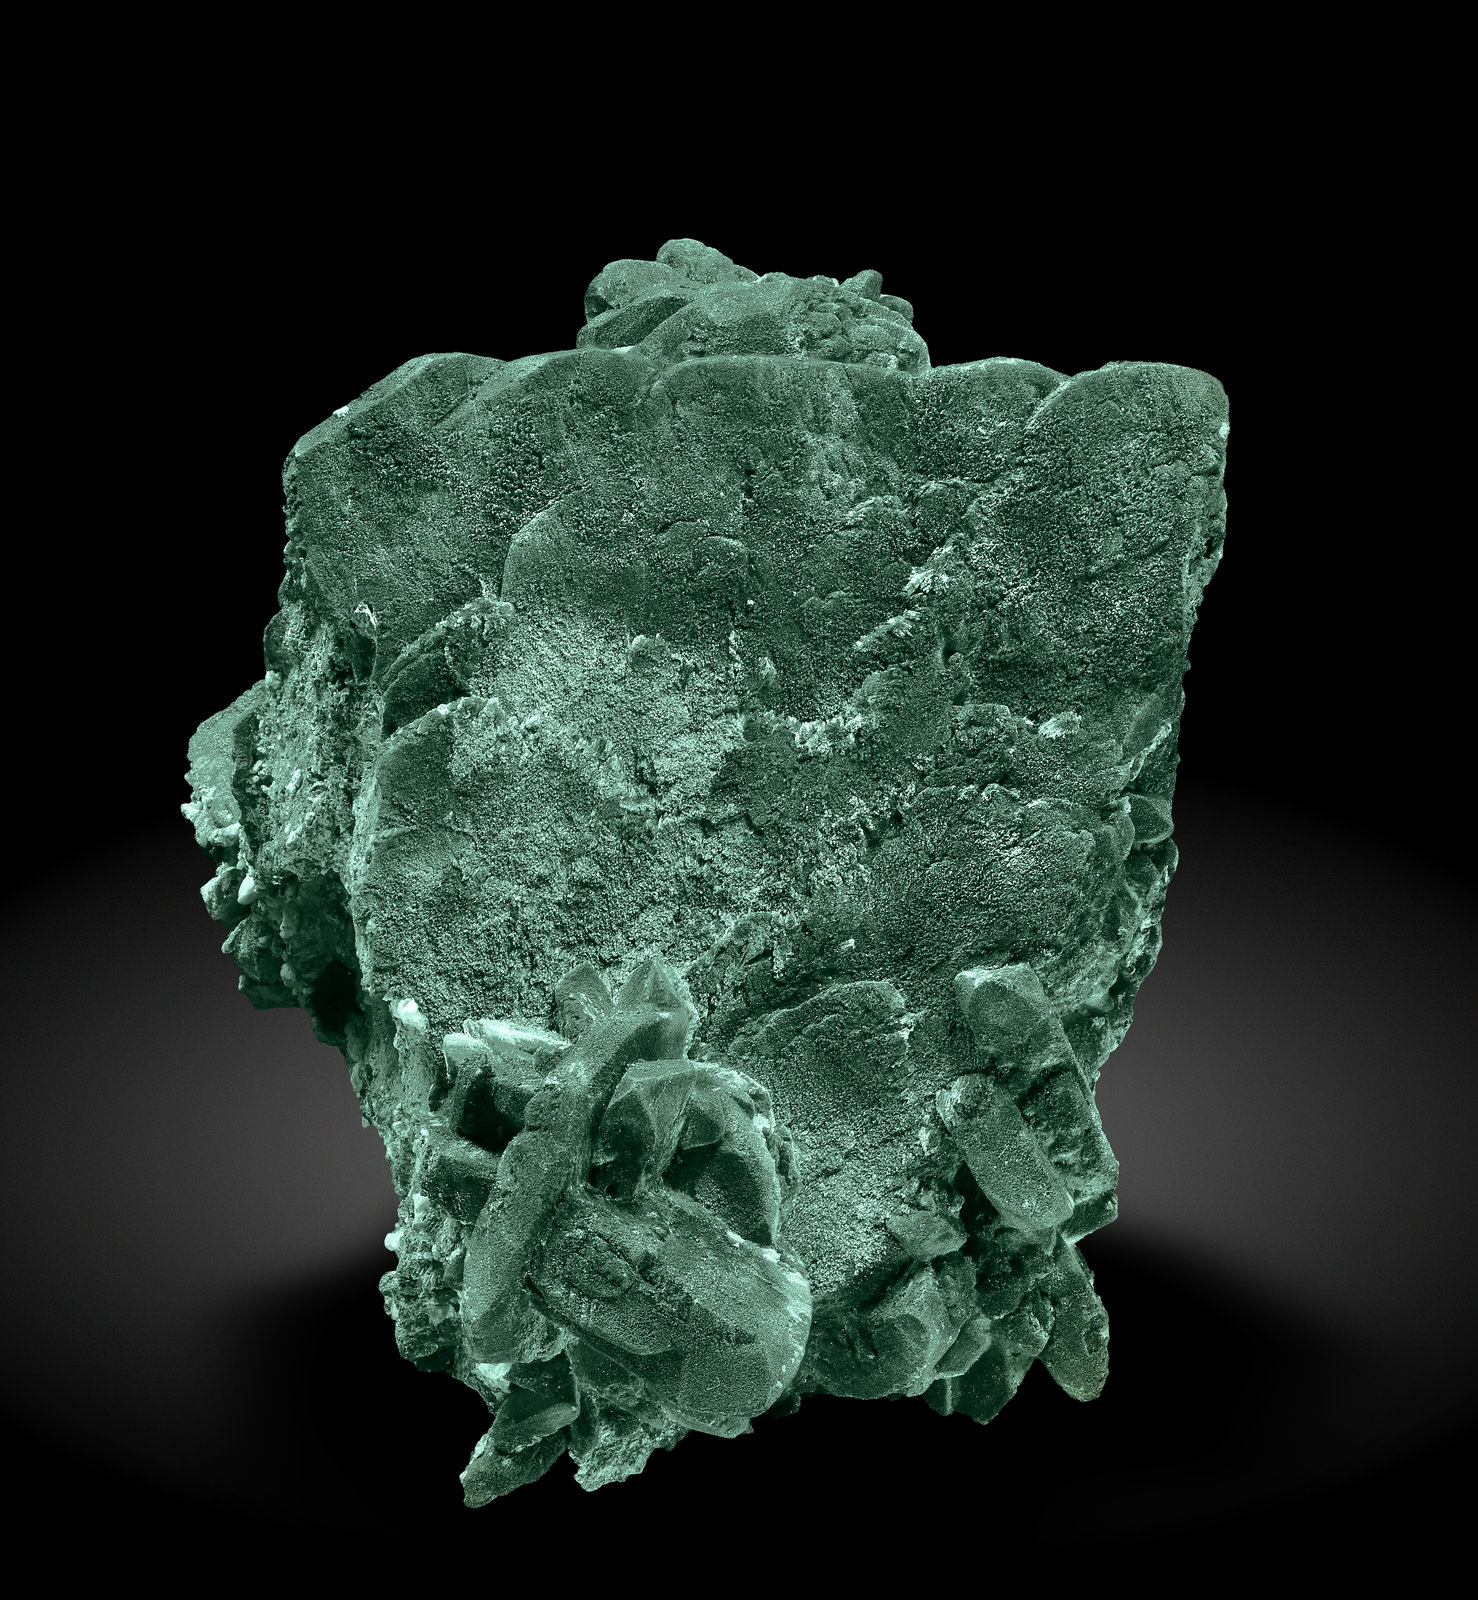 specimens/s_imagesAI9/Malachite-TG99AI9_5991_s.jpg